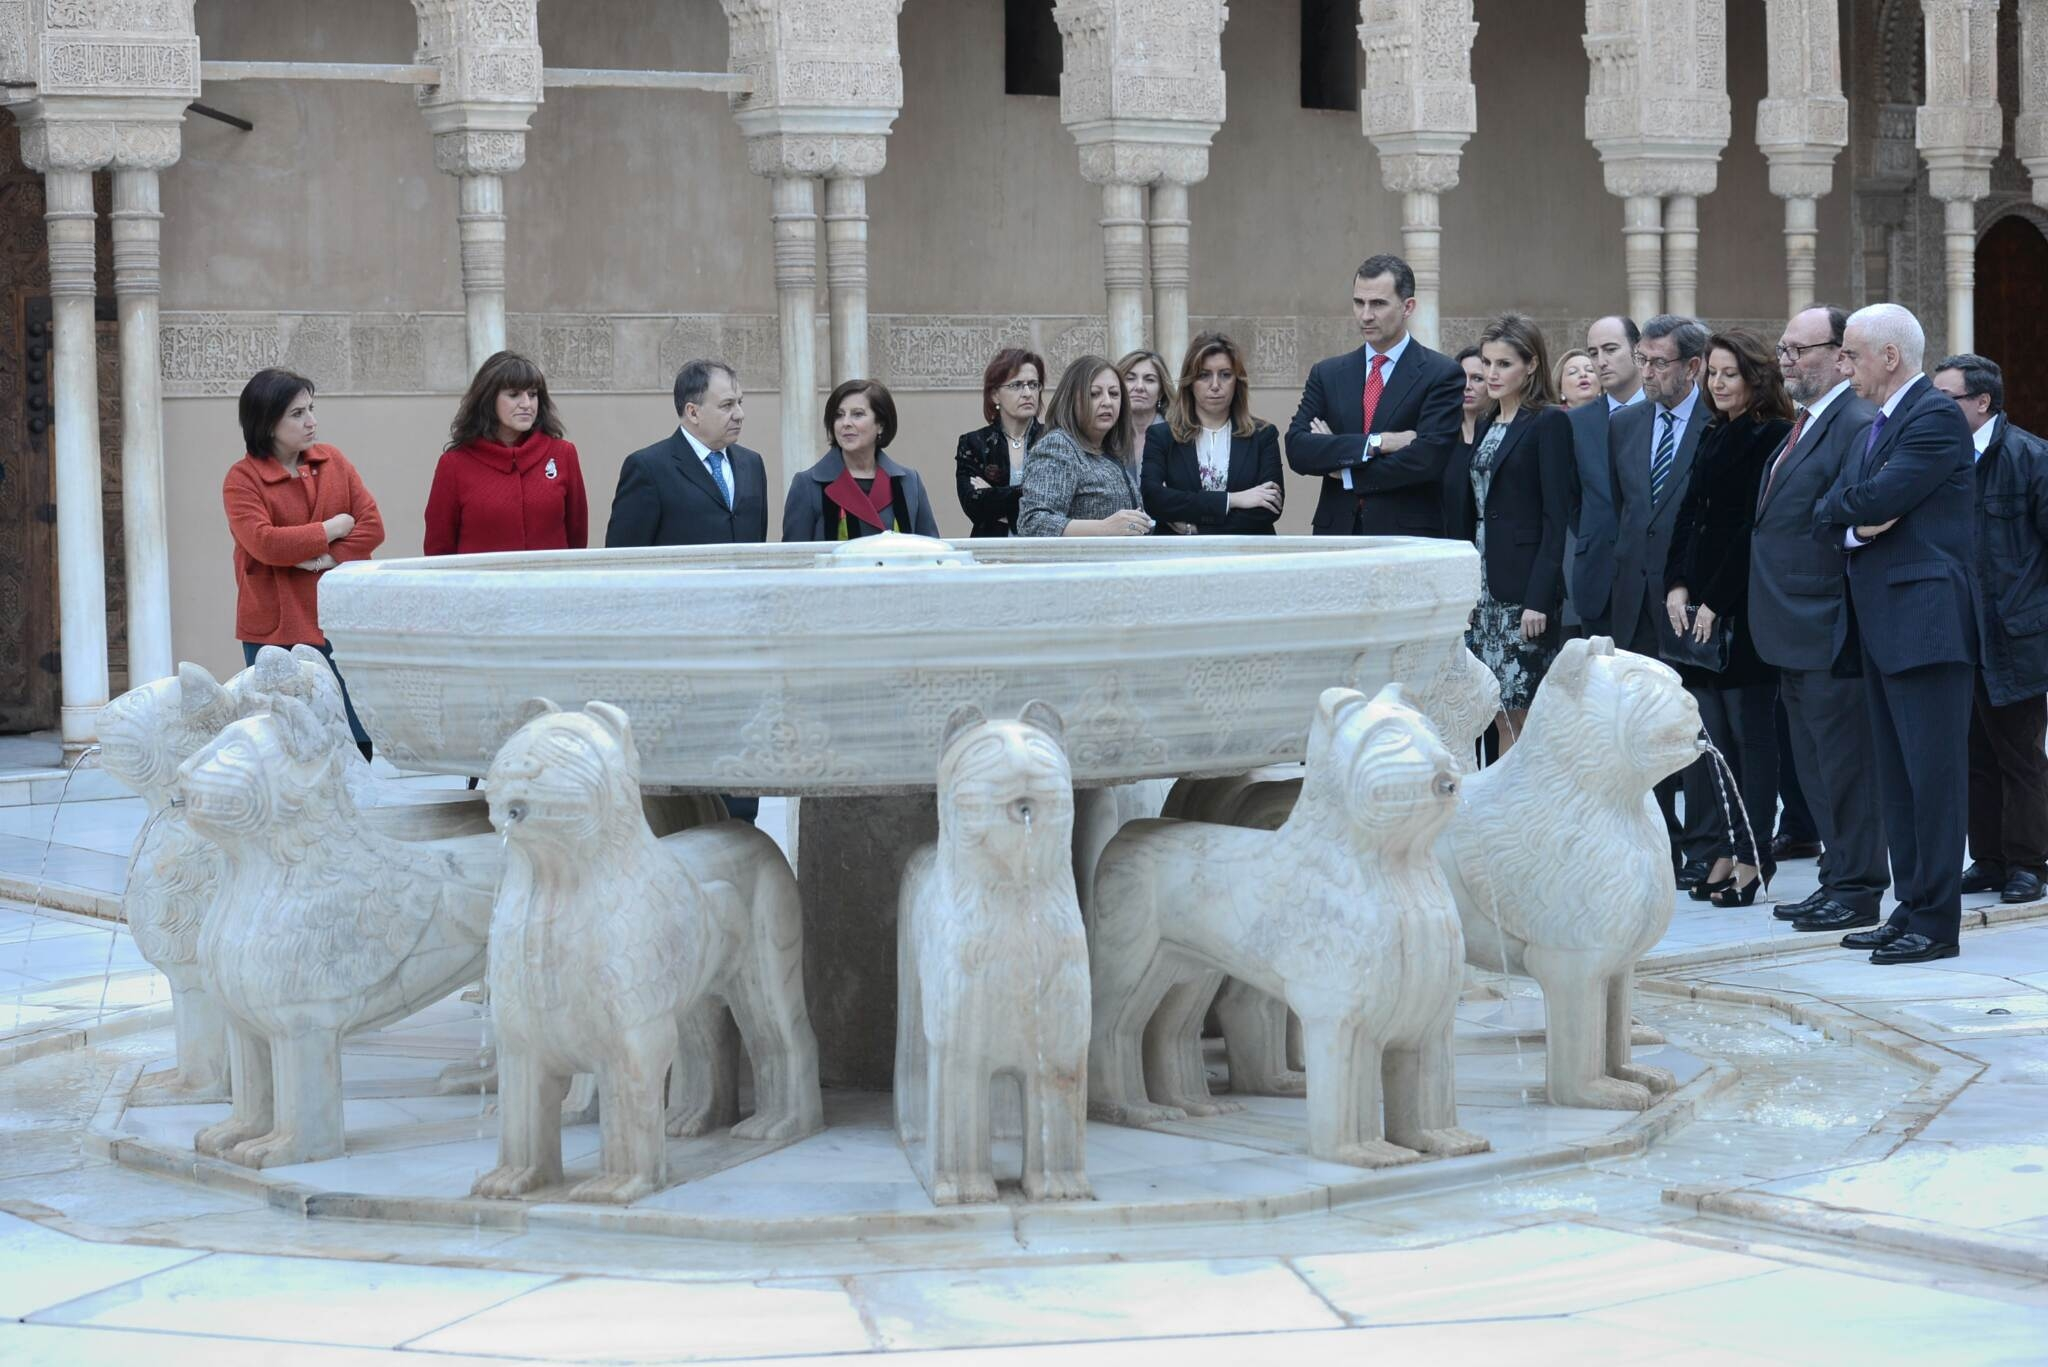 The Prince and Princess of Asturias delighted about their visit to the Alhambra